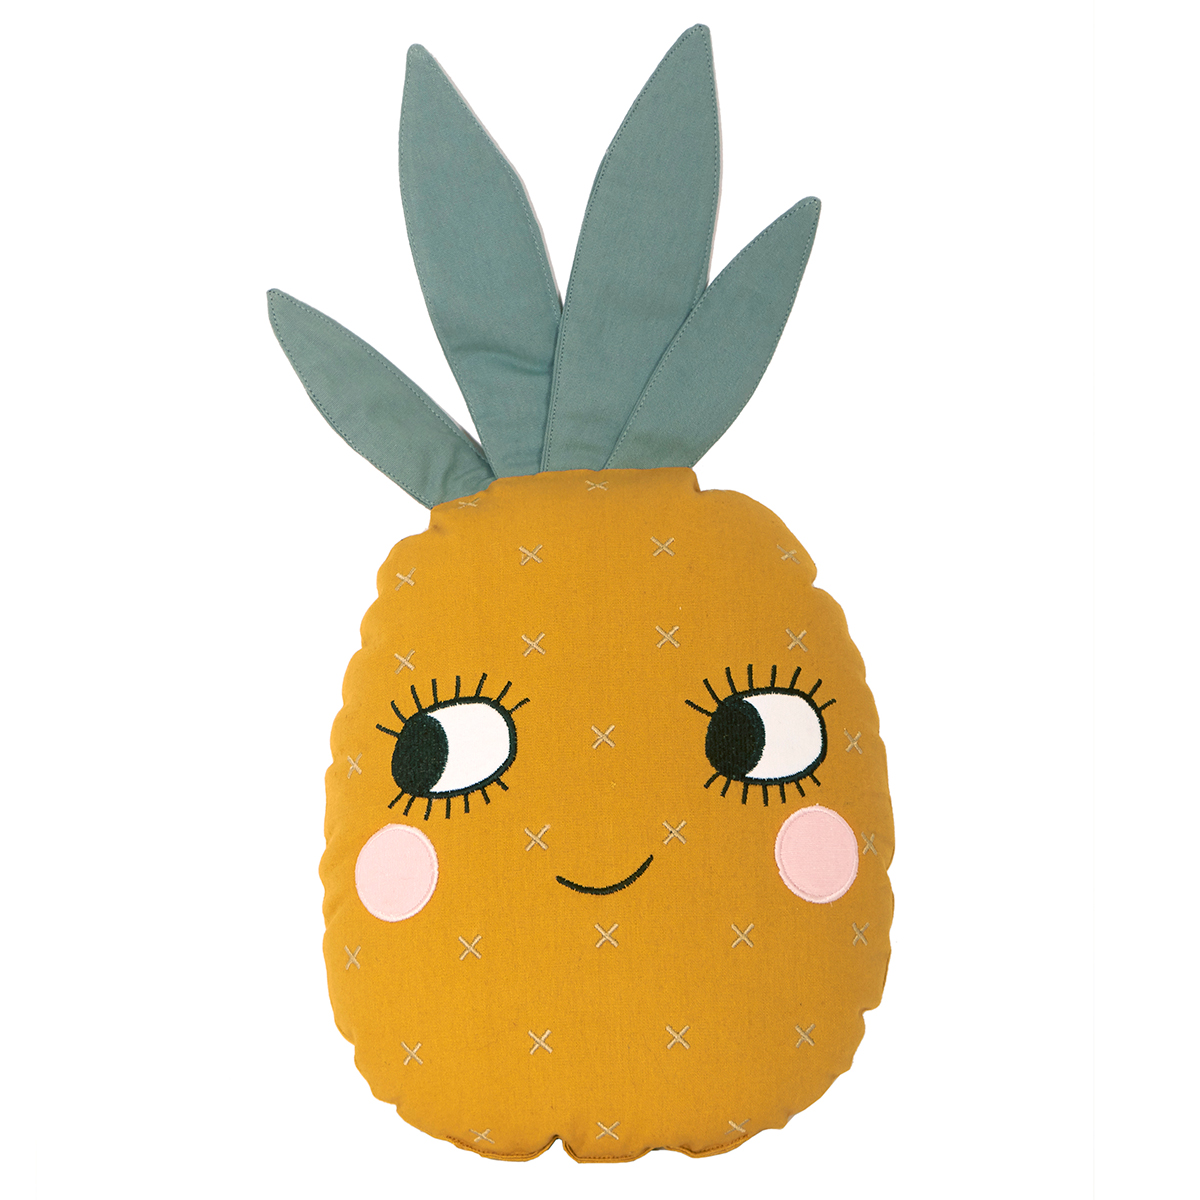 Roommate krammepude - Pineapple cushion